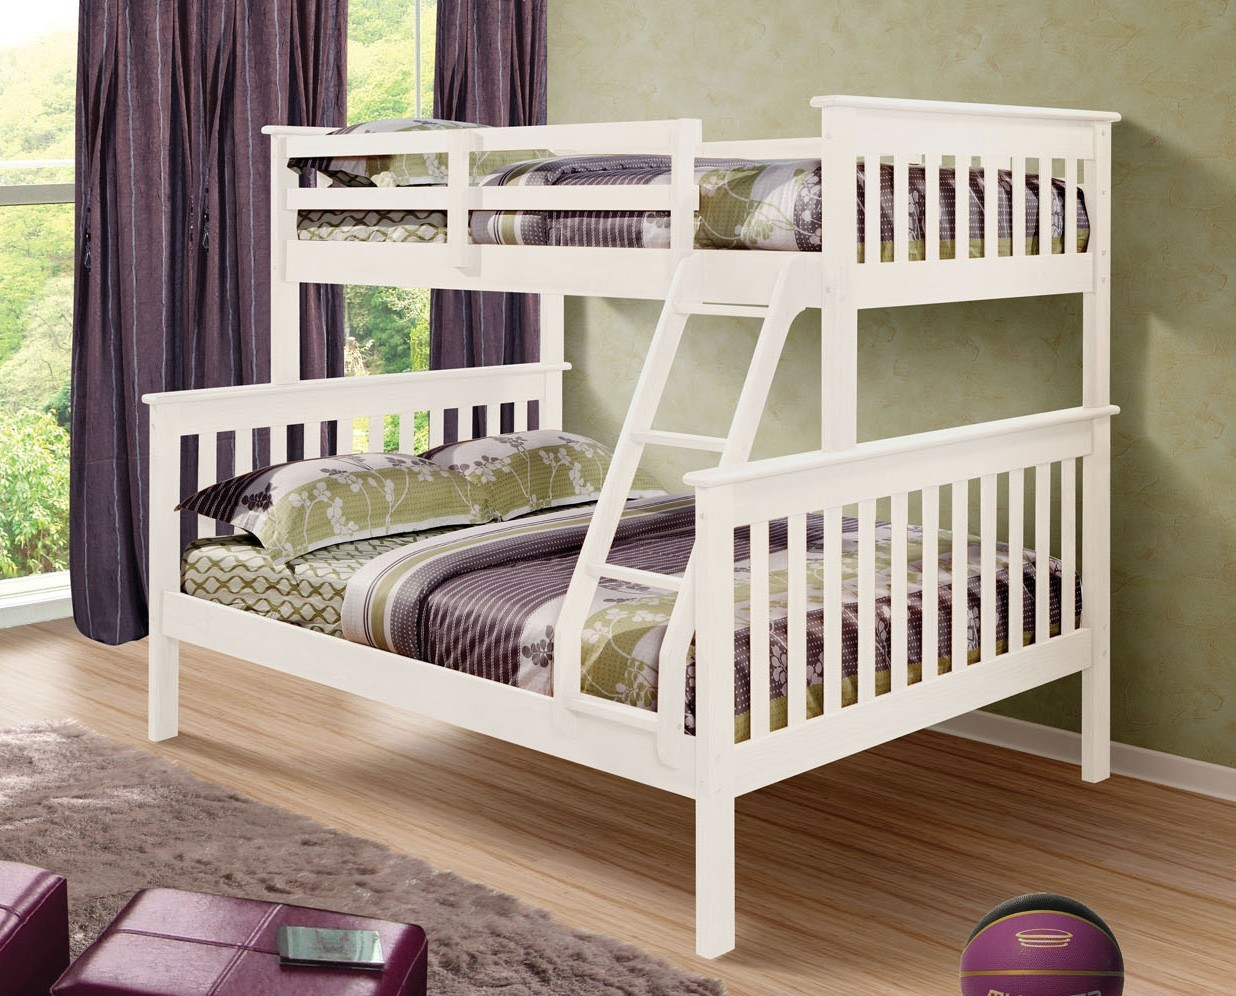 122-3W_TF_Mission Bunk Bed